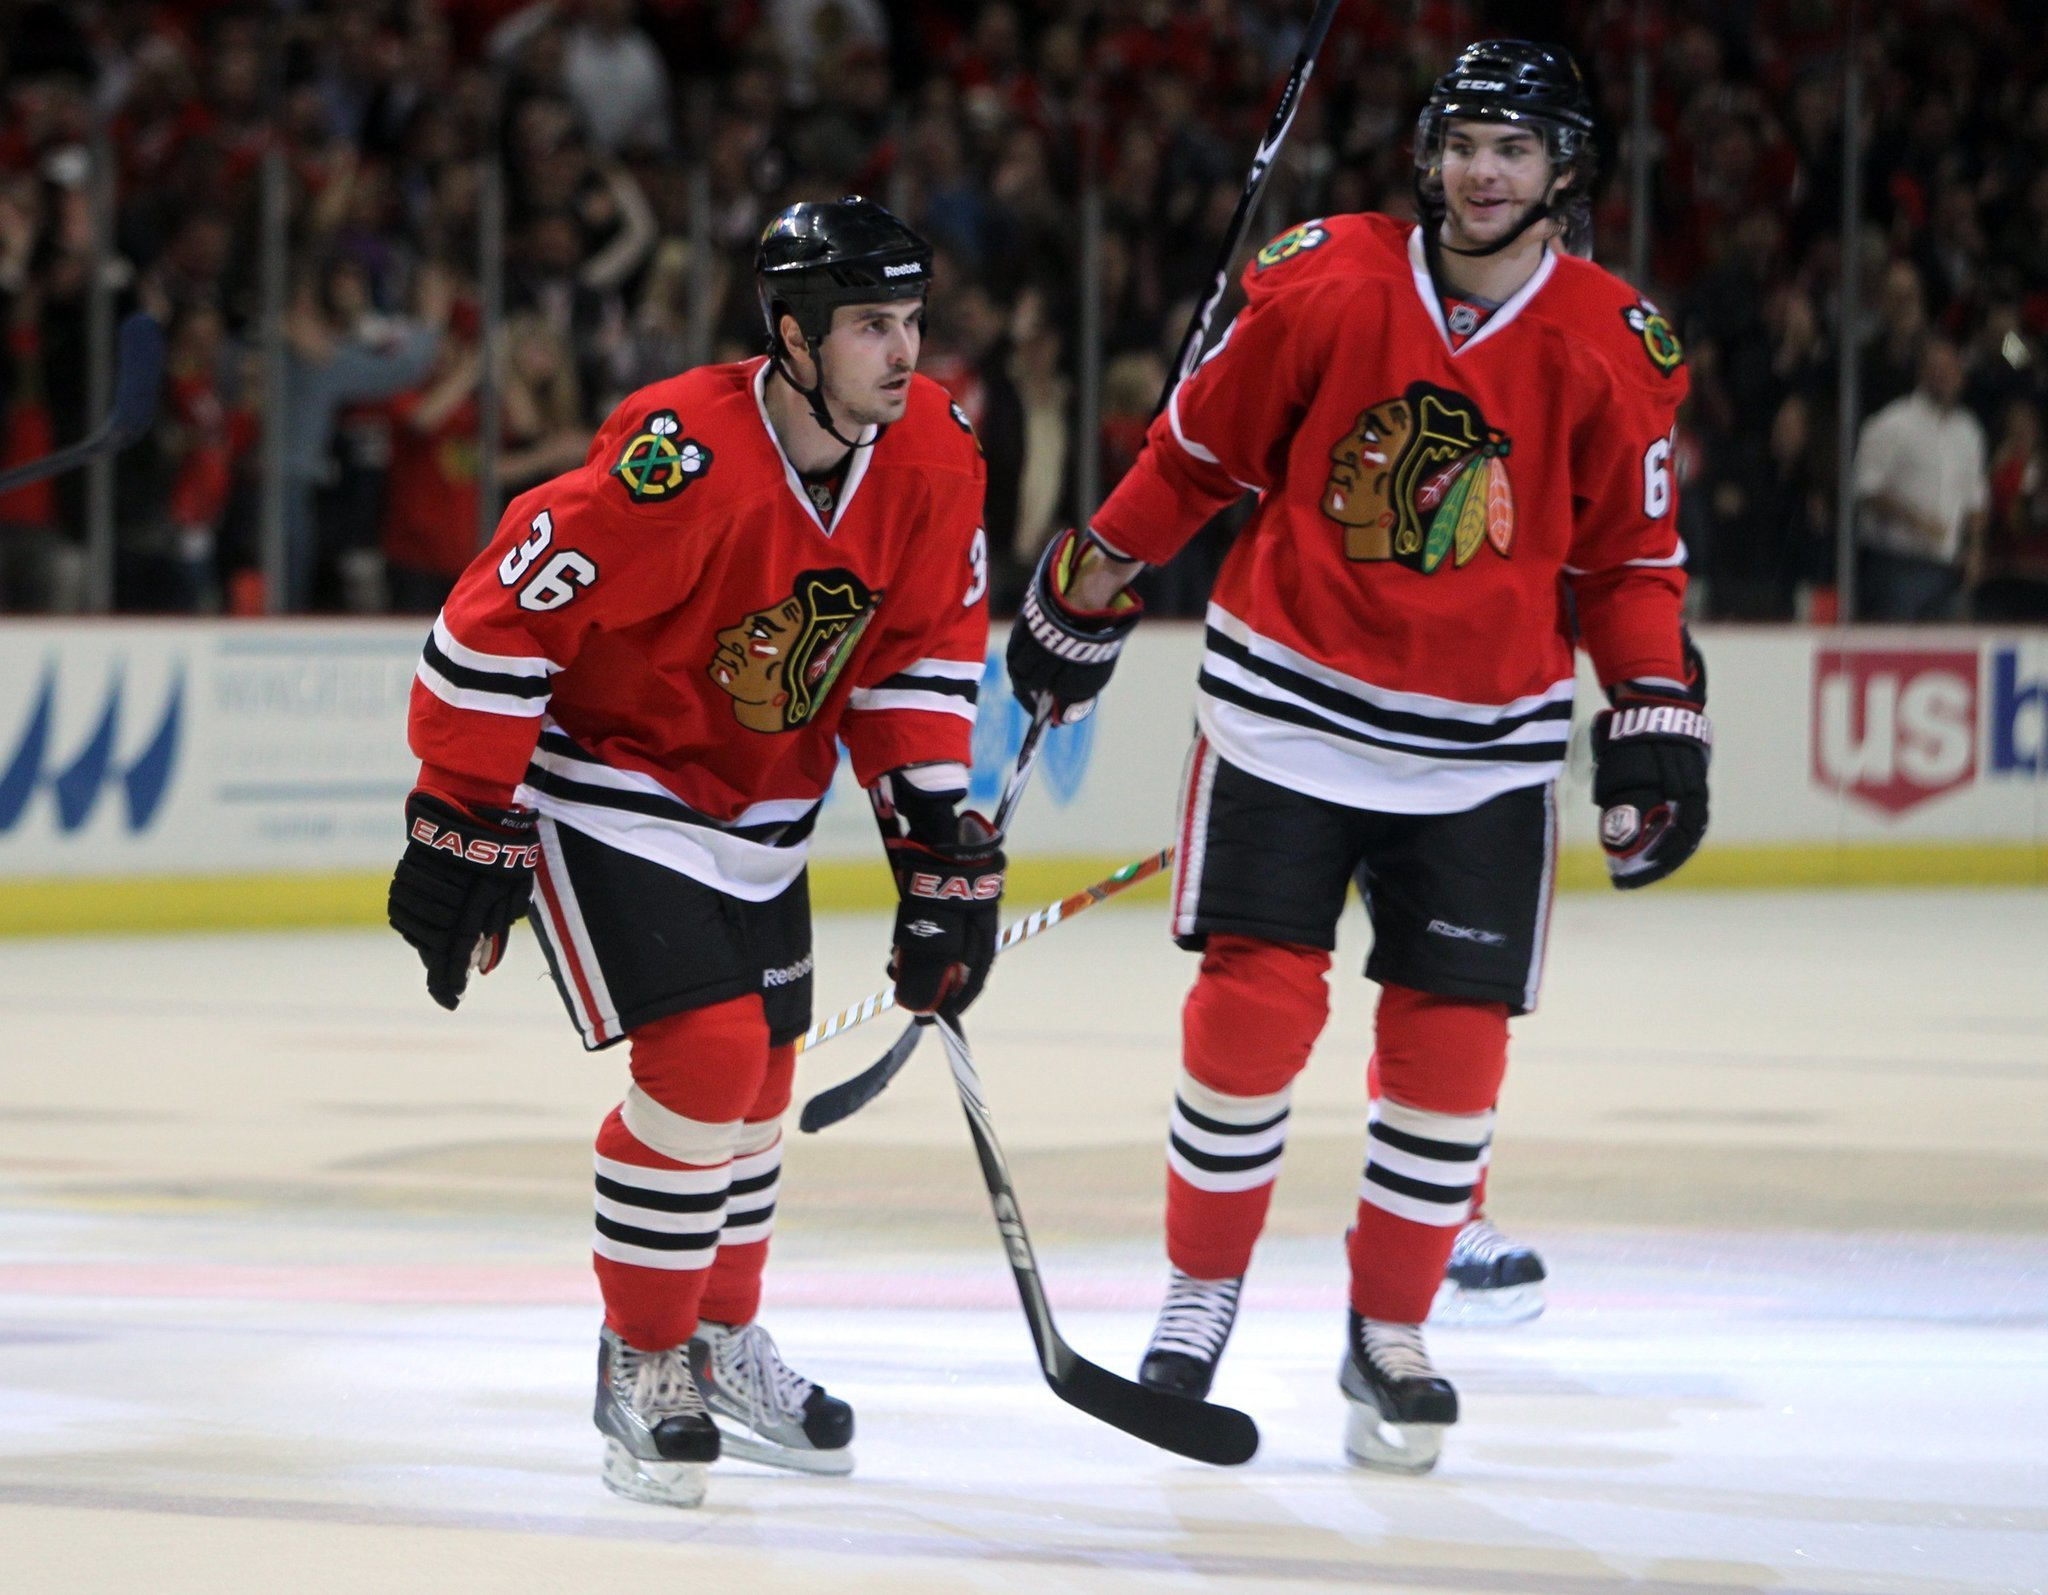 Ct-dave-bolland-blackhawks-playoff-comeback-spt-0419-20170418